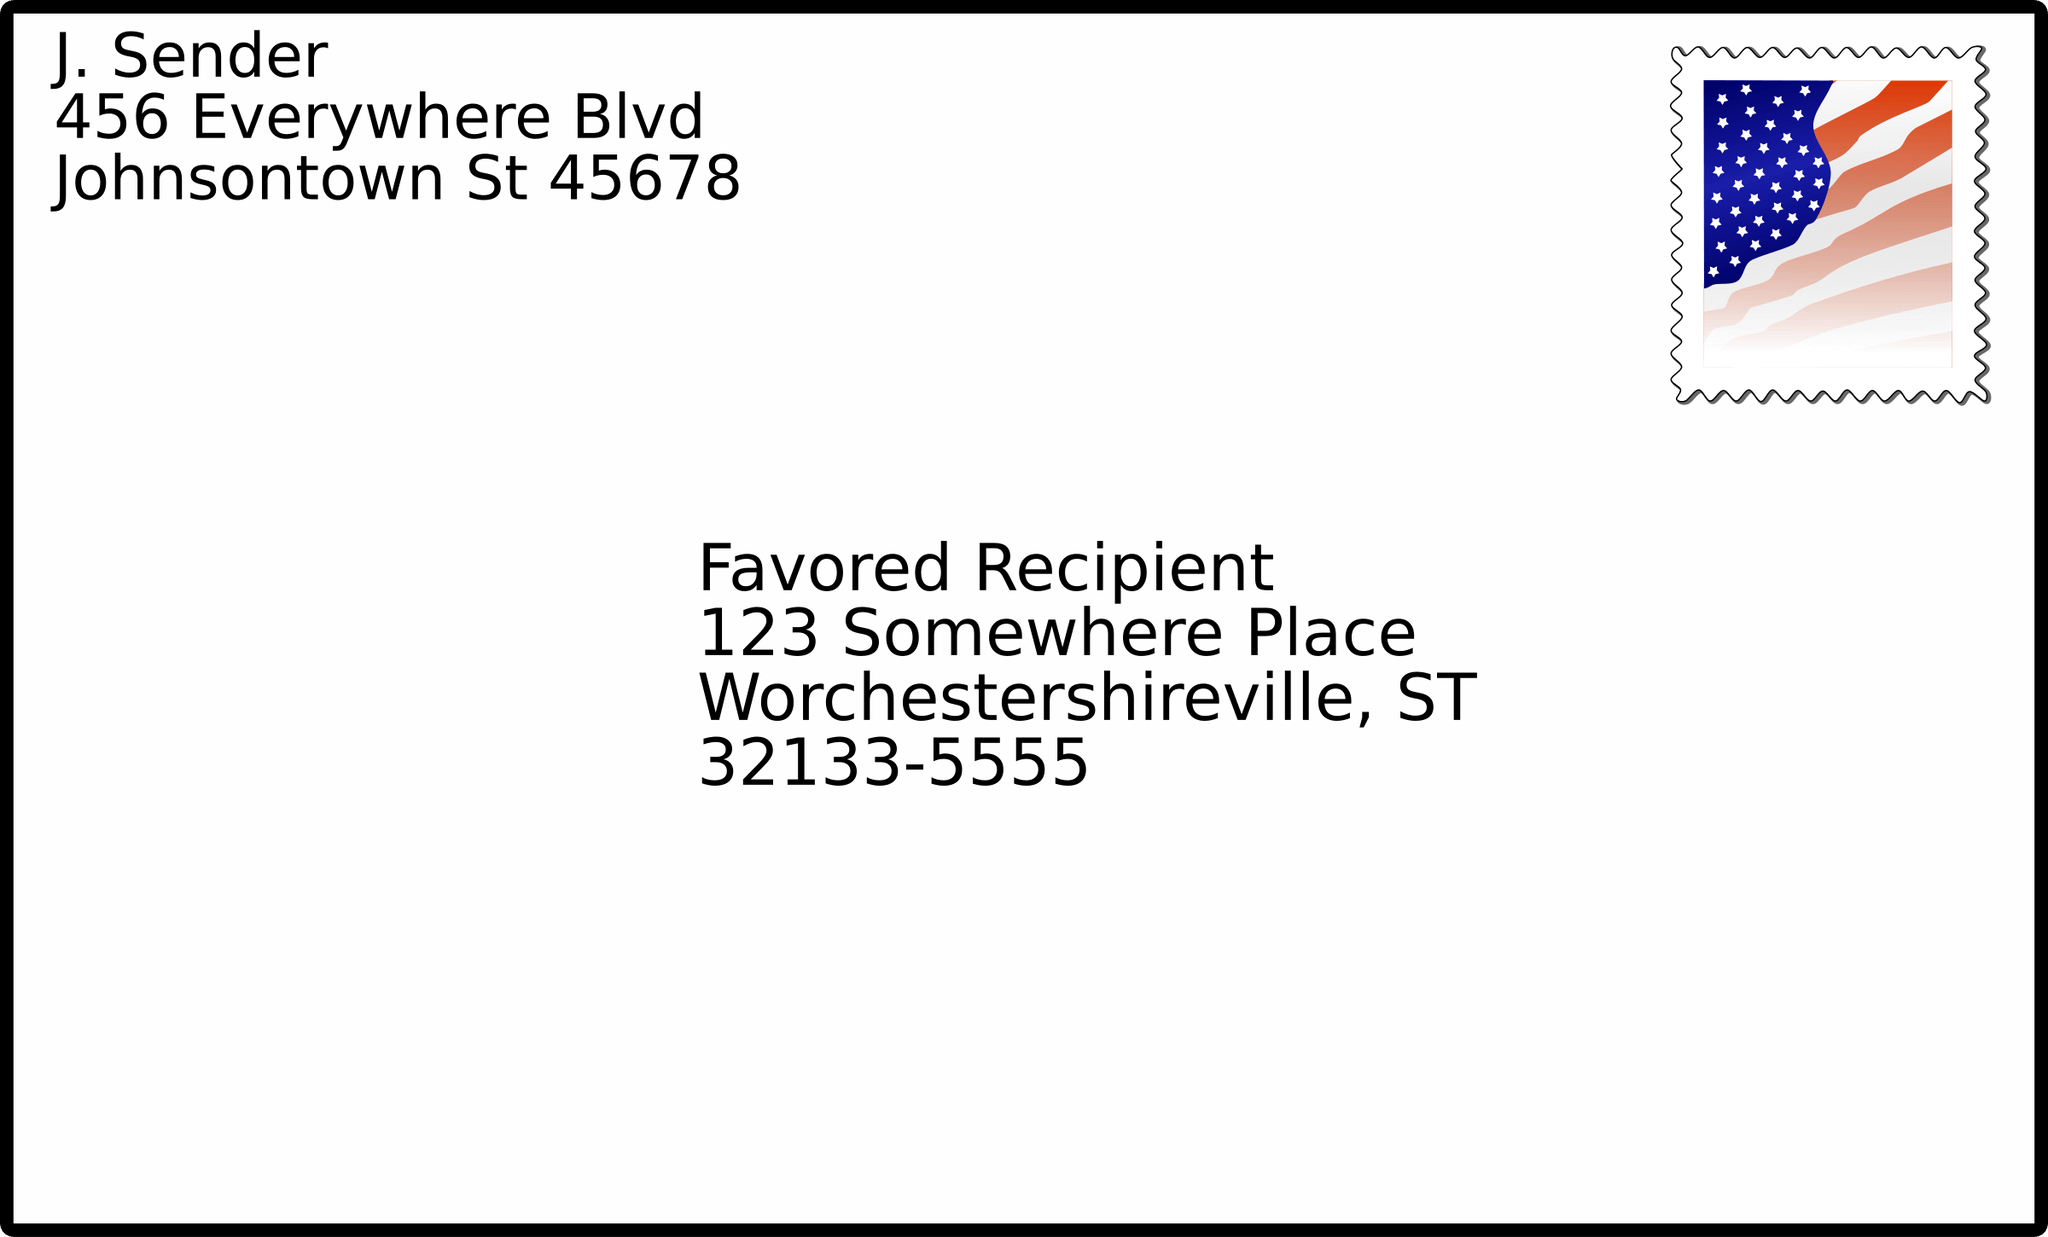 Delaware certificate of good standing personal invoice template word delaware certificate of good standing sample email cover letter global mail forwarding delaware address 3 1024x1024 yadclub Gallery